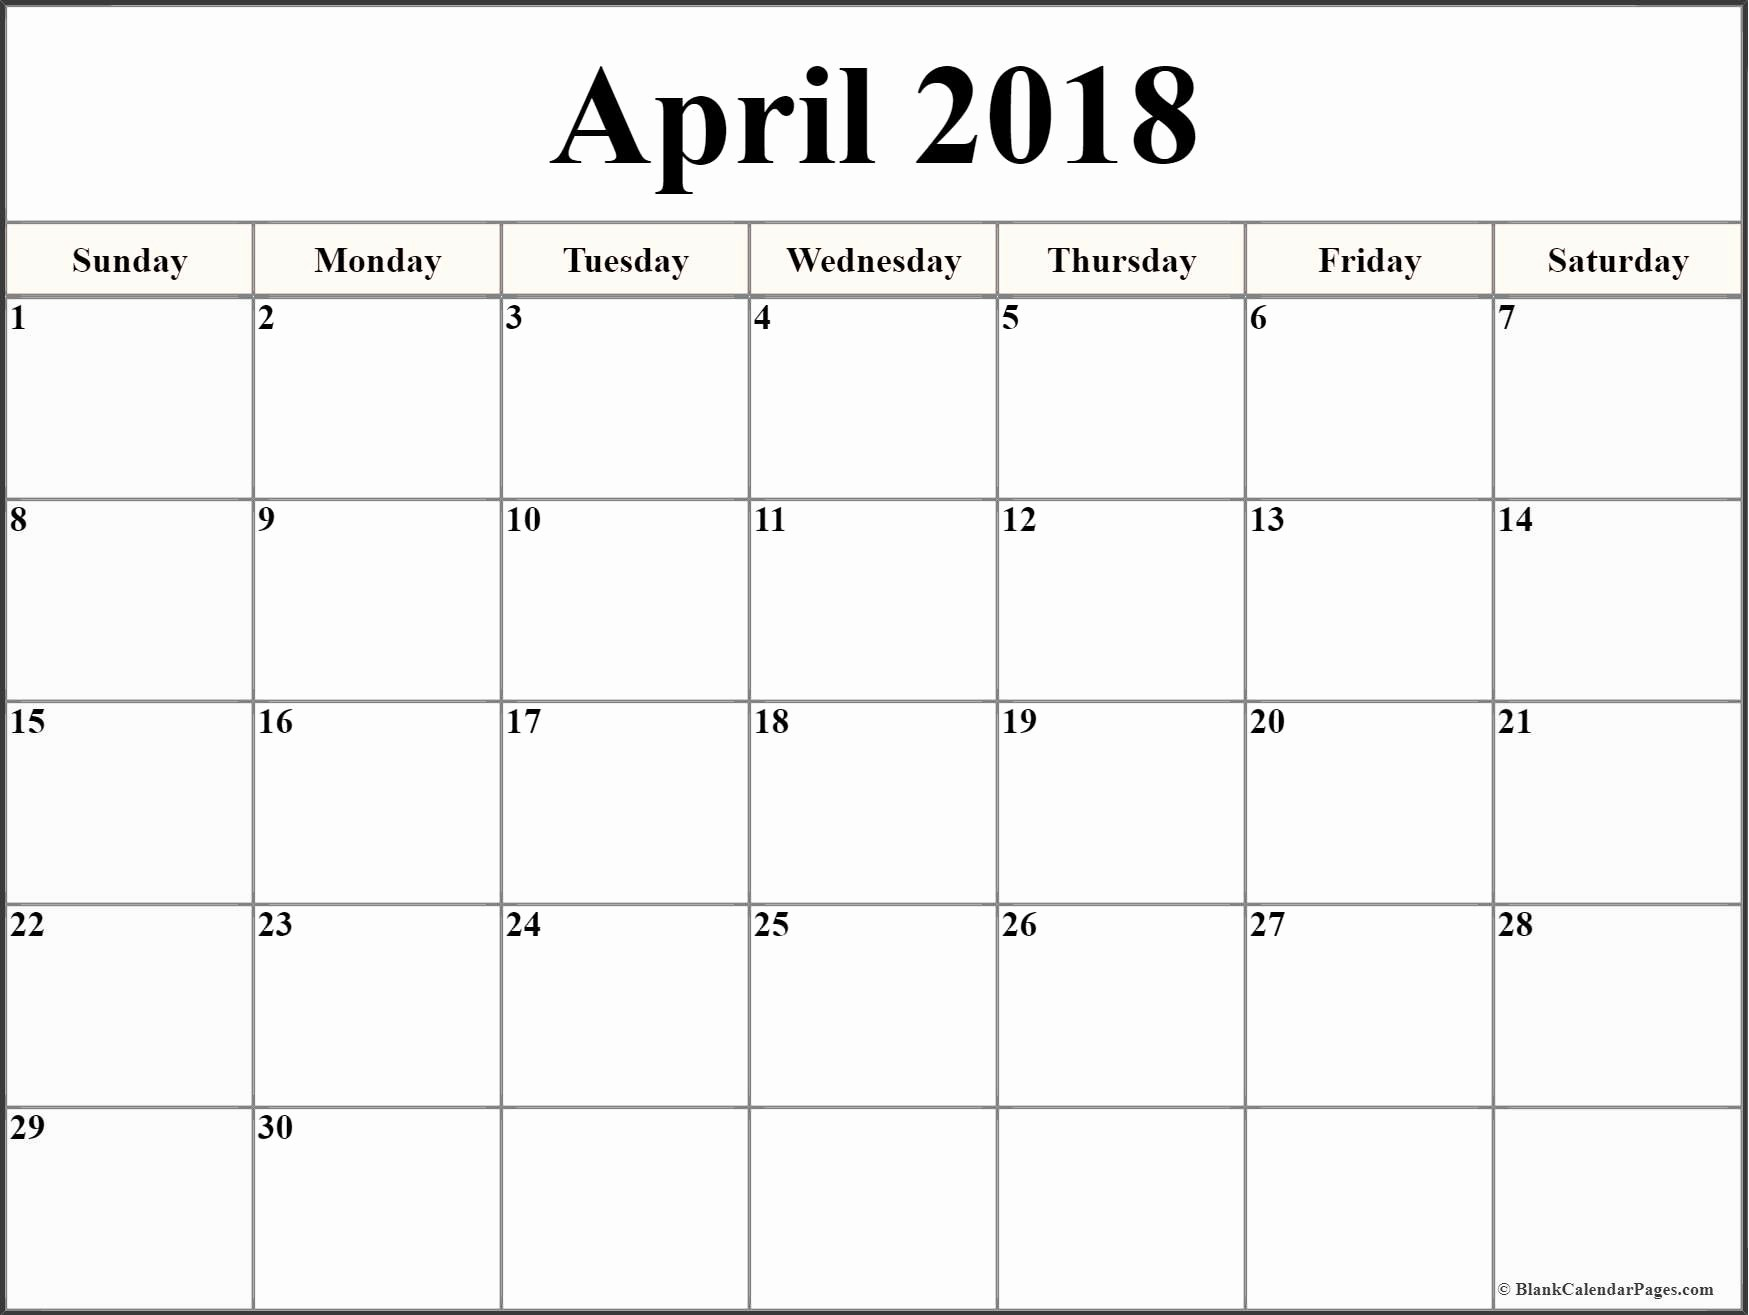 Blank April 2018 Calendar Template New April 2018 Blank Calendar Templates